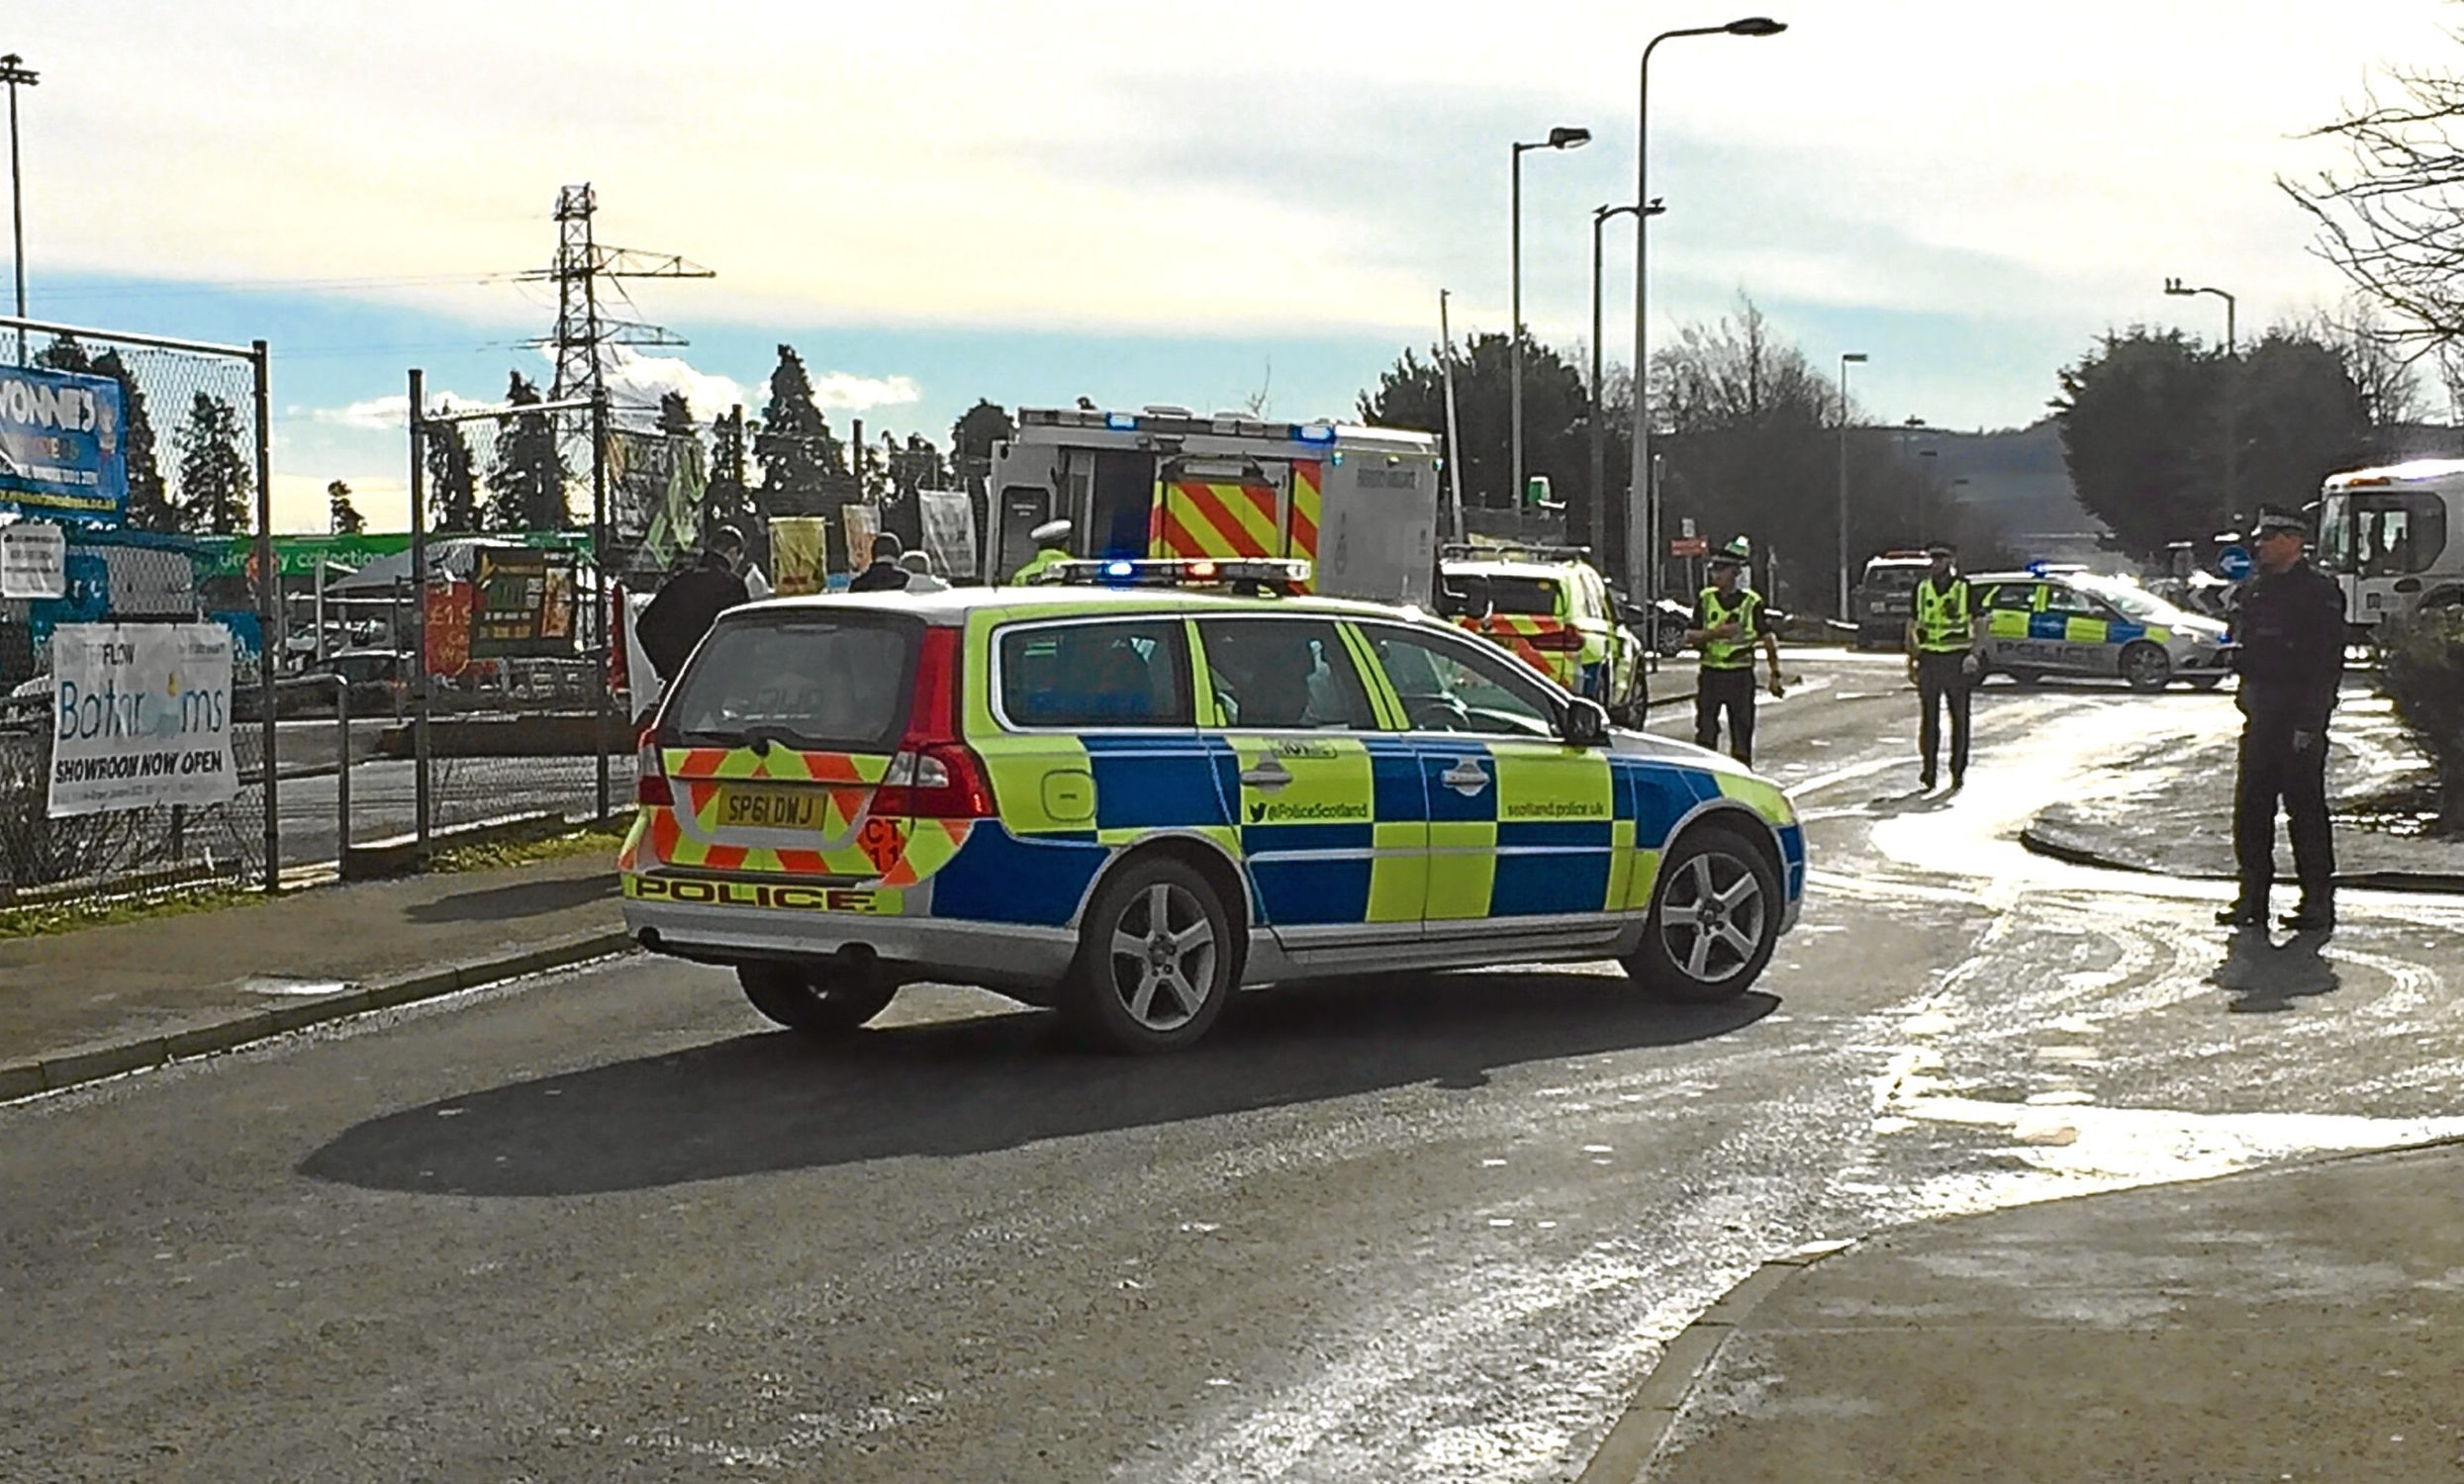 Police and an ambulance at the scene of the incident.